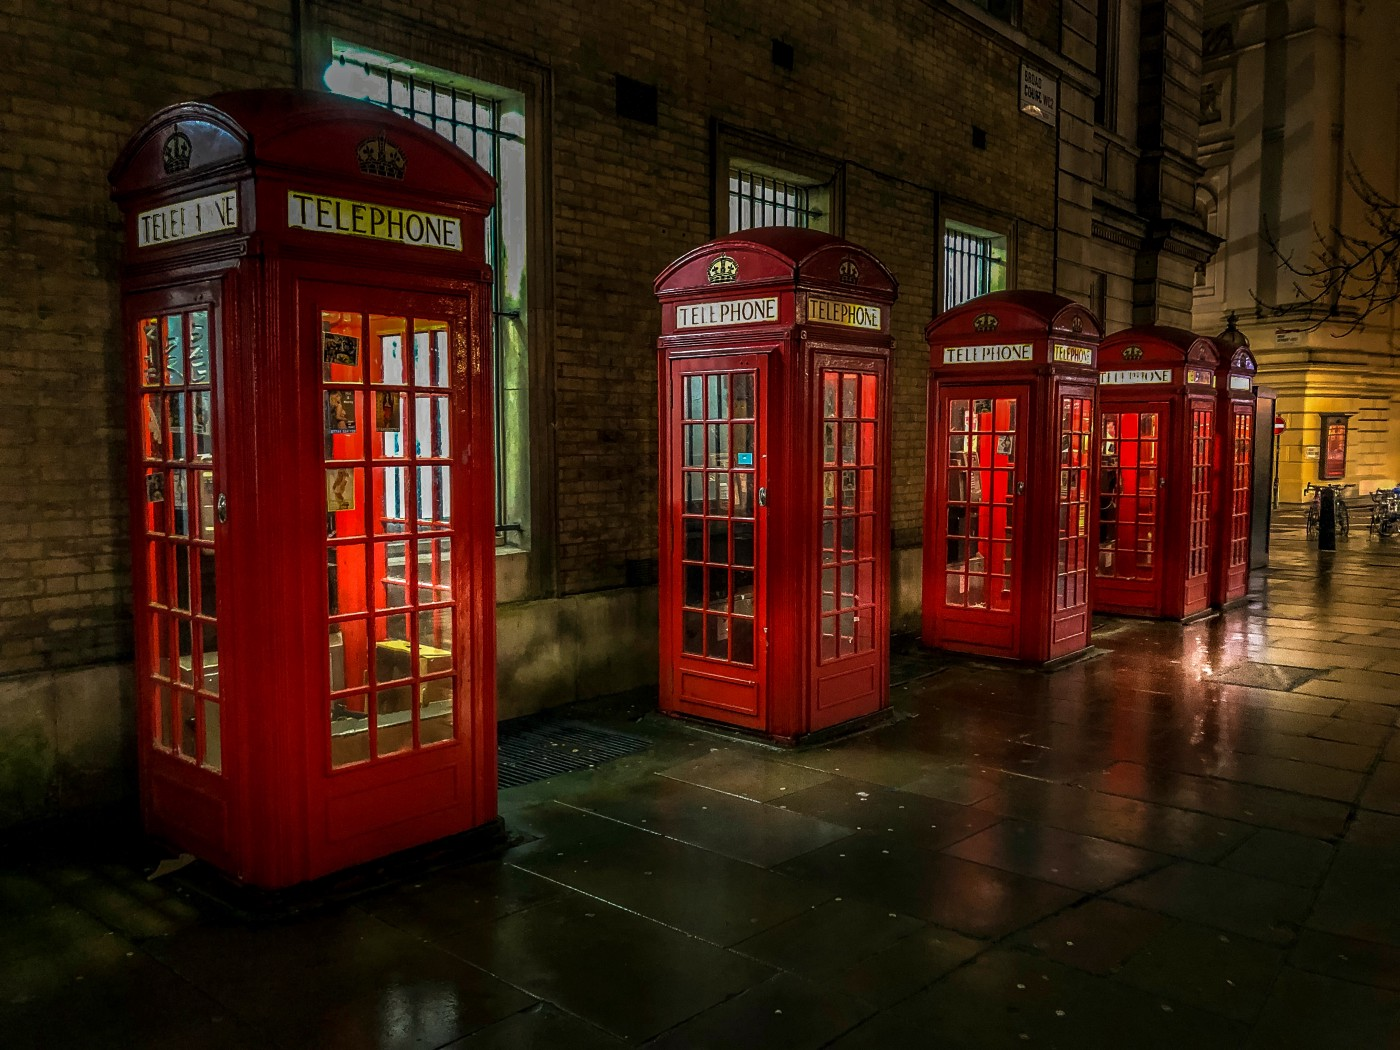 a row of red British telephone booths (call boxes) along a street